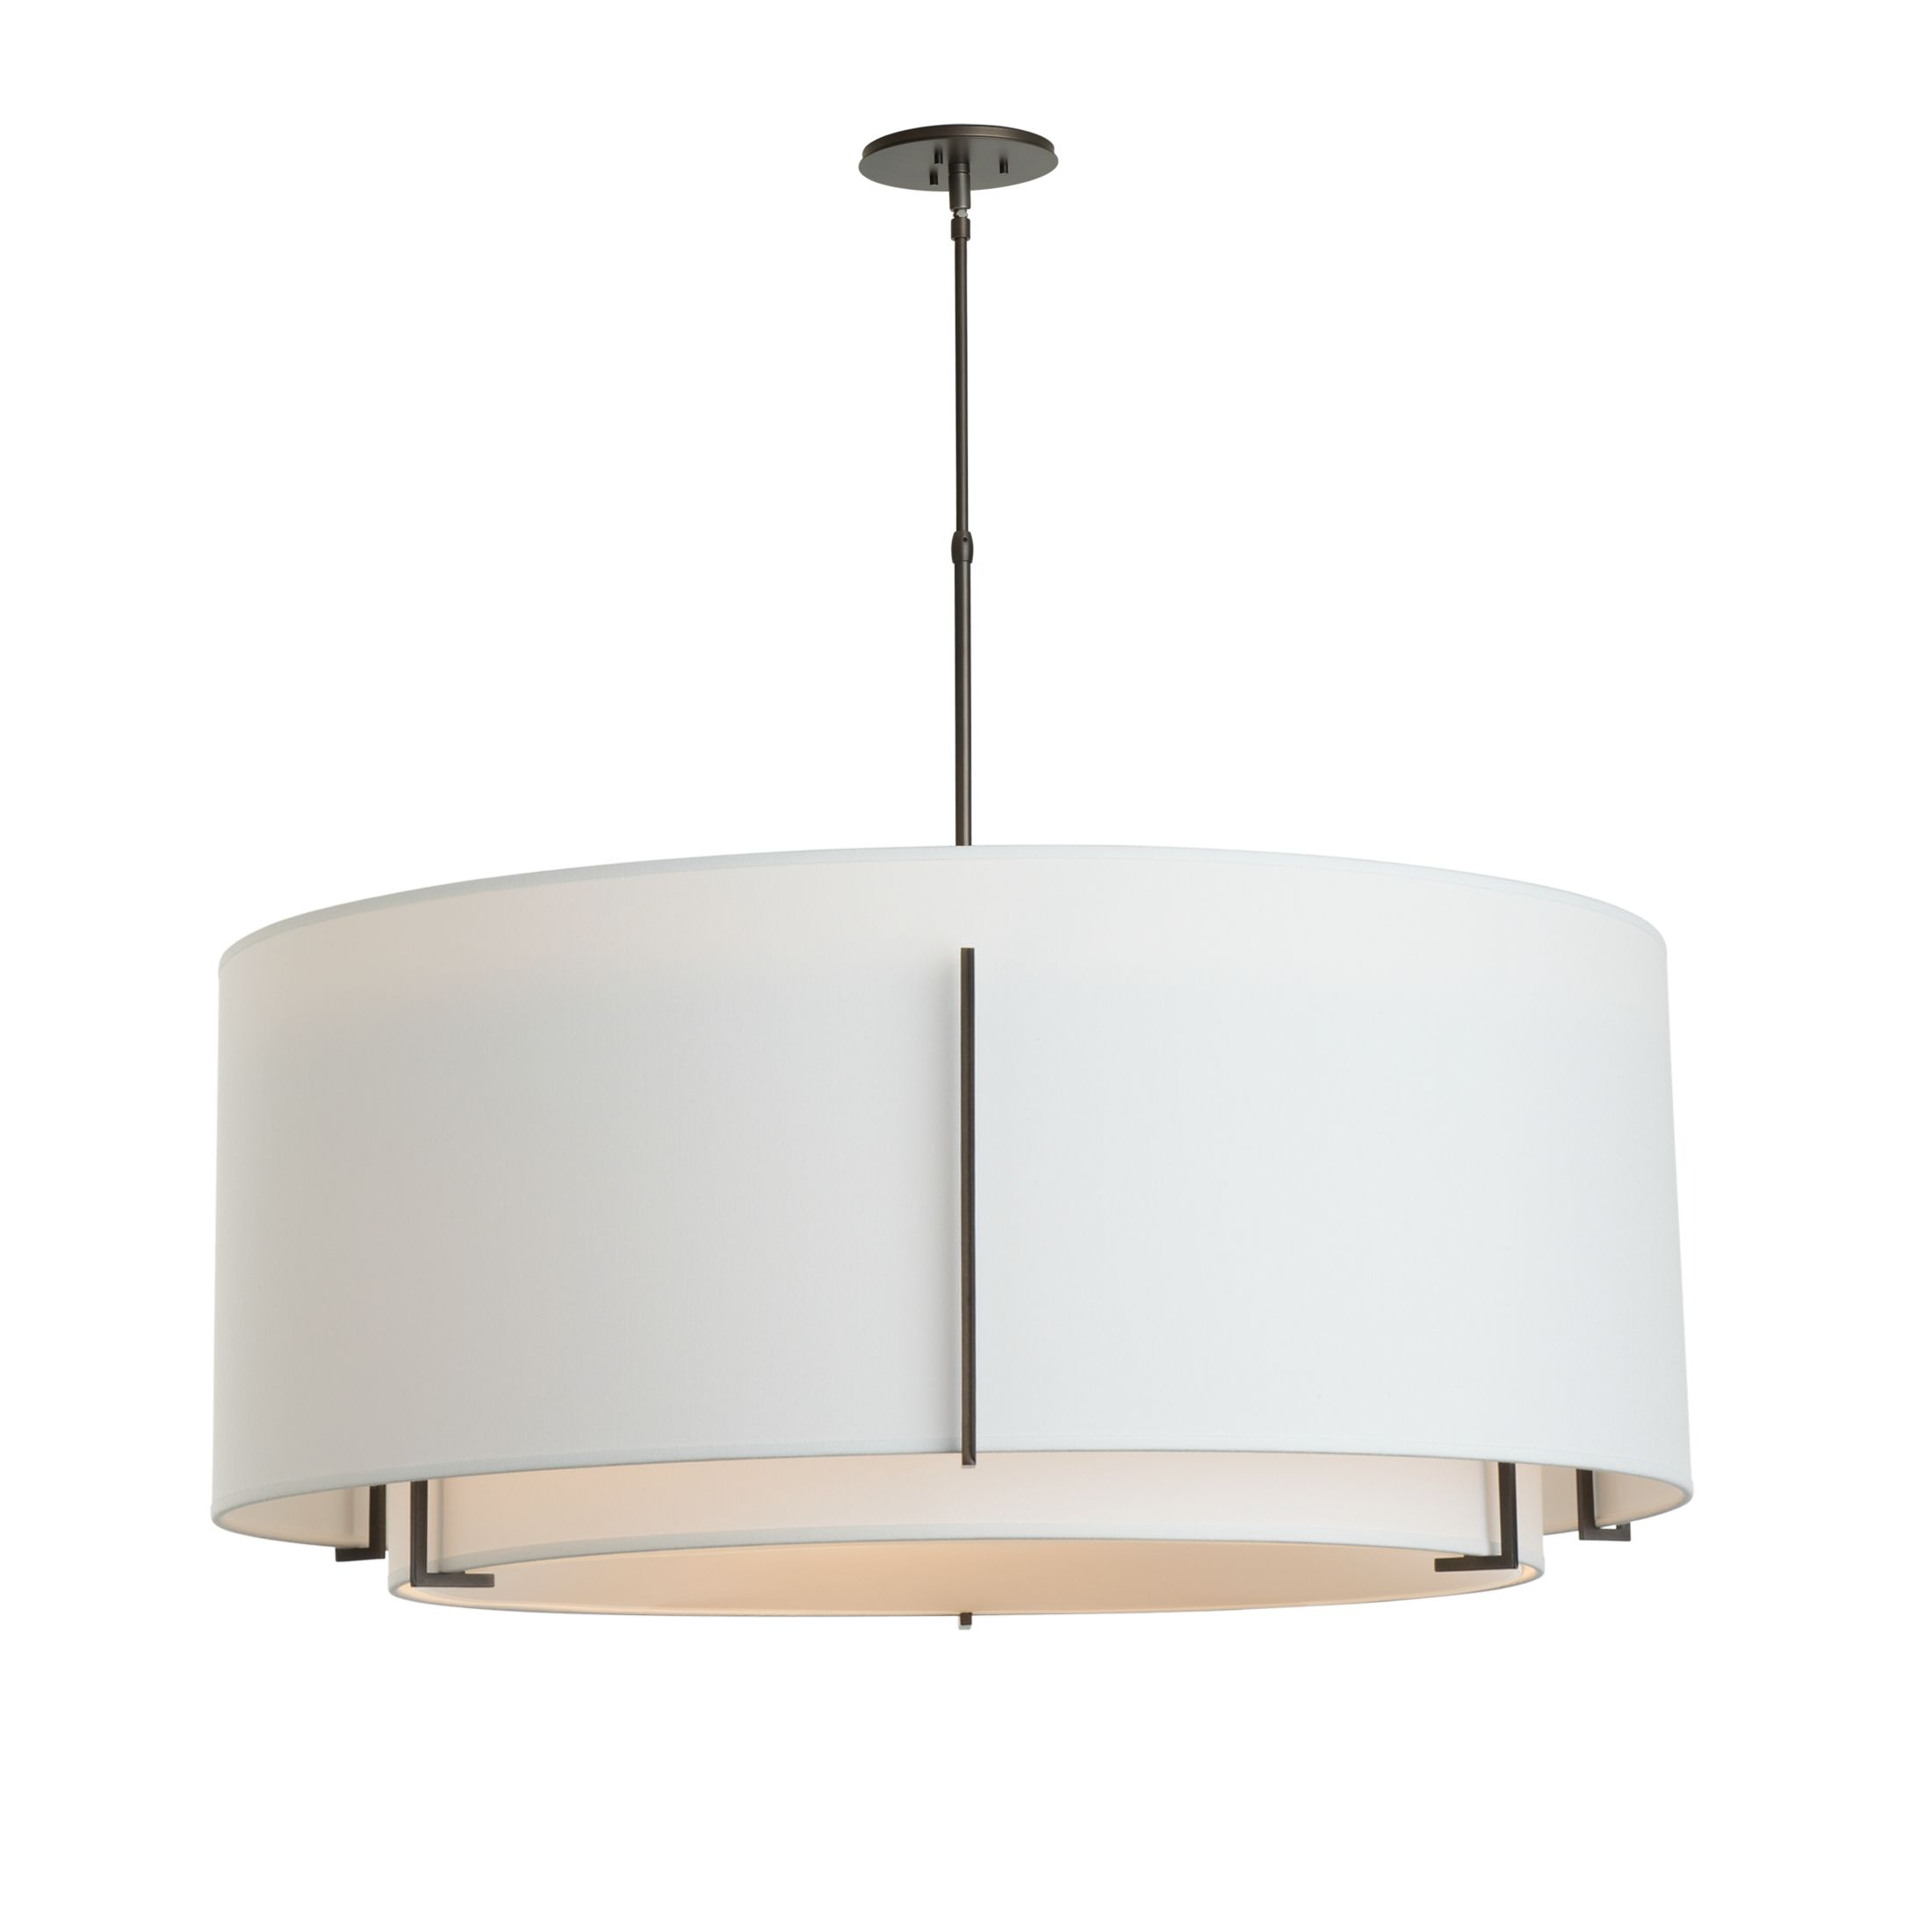 Product Detail: Exos Double Shade Large Scale Pendant